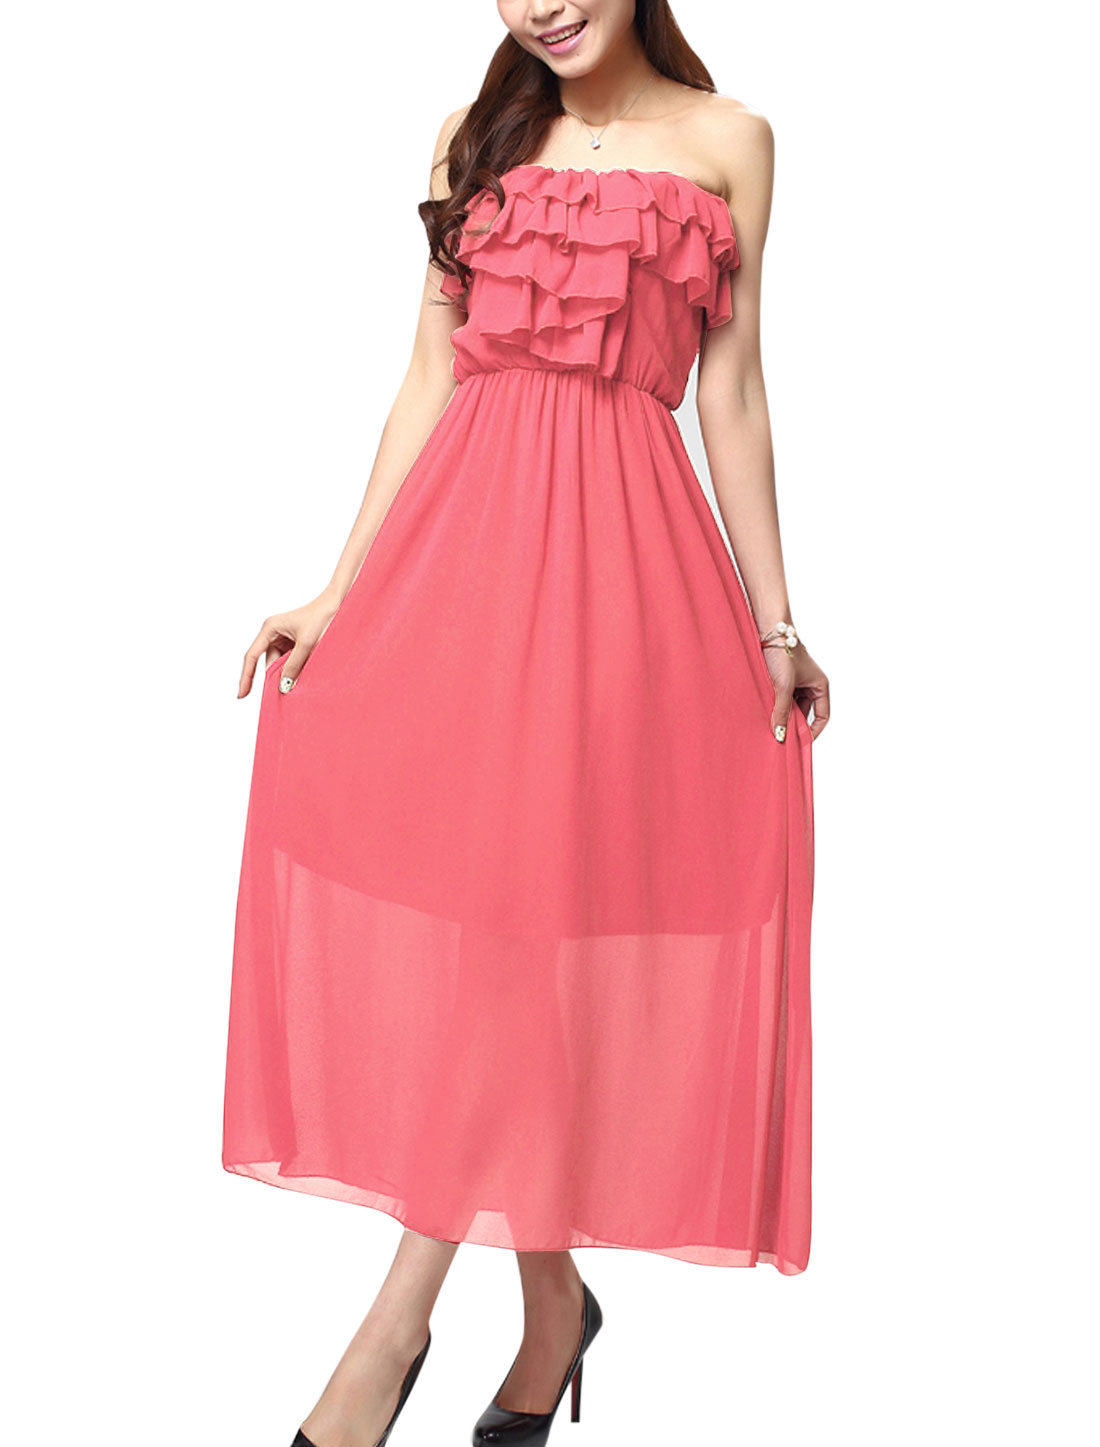 Women Ruffled Design Lining Bare Back Maxi Sexy Corset Dress Pink XS